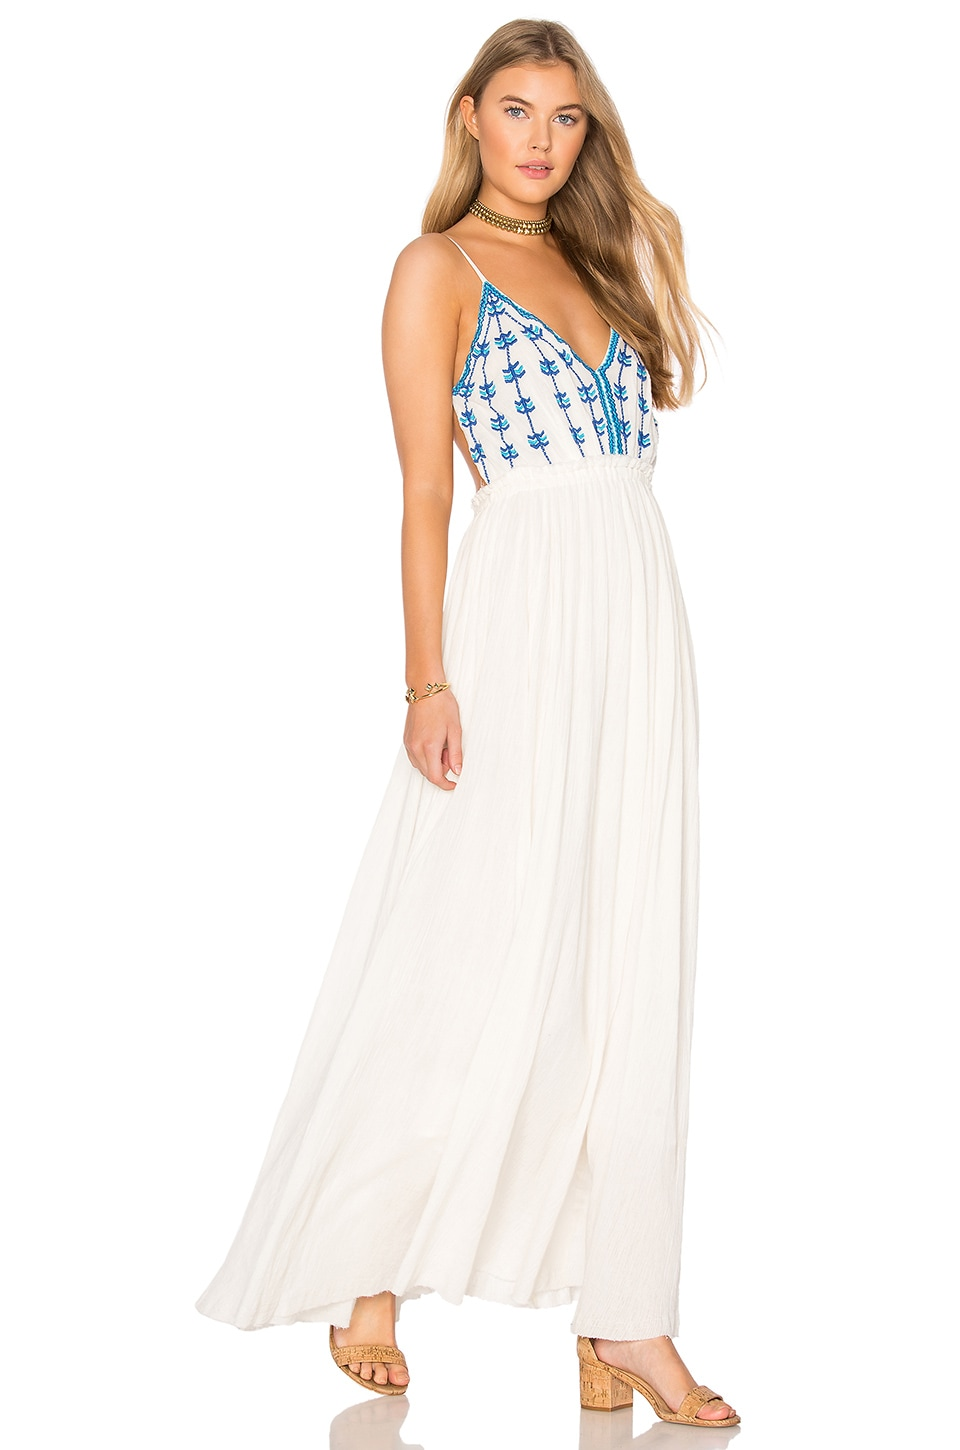 Riptide Backless Maxi Dress by Raga